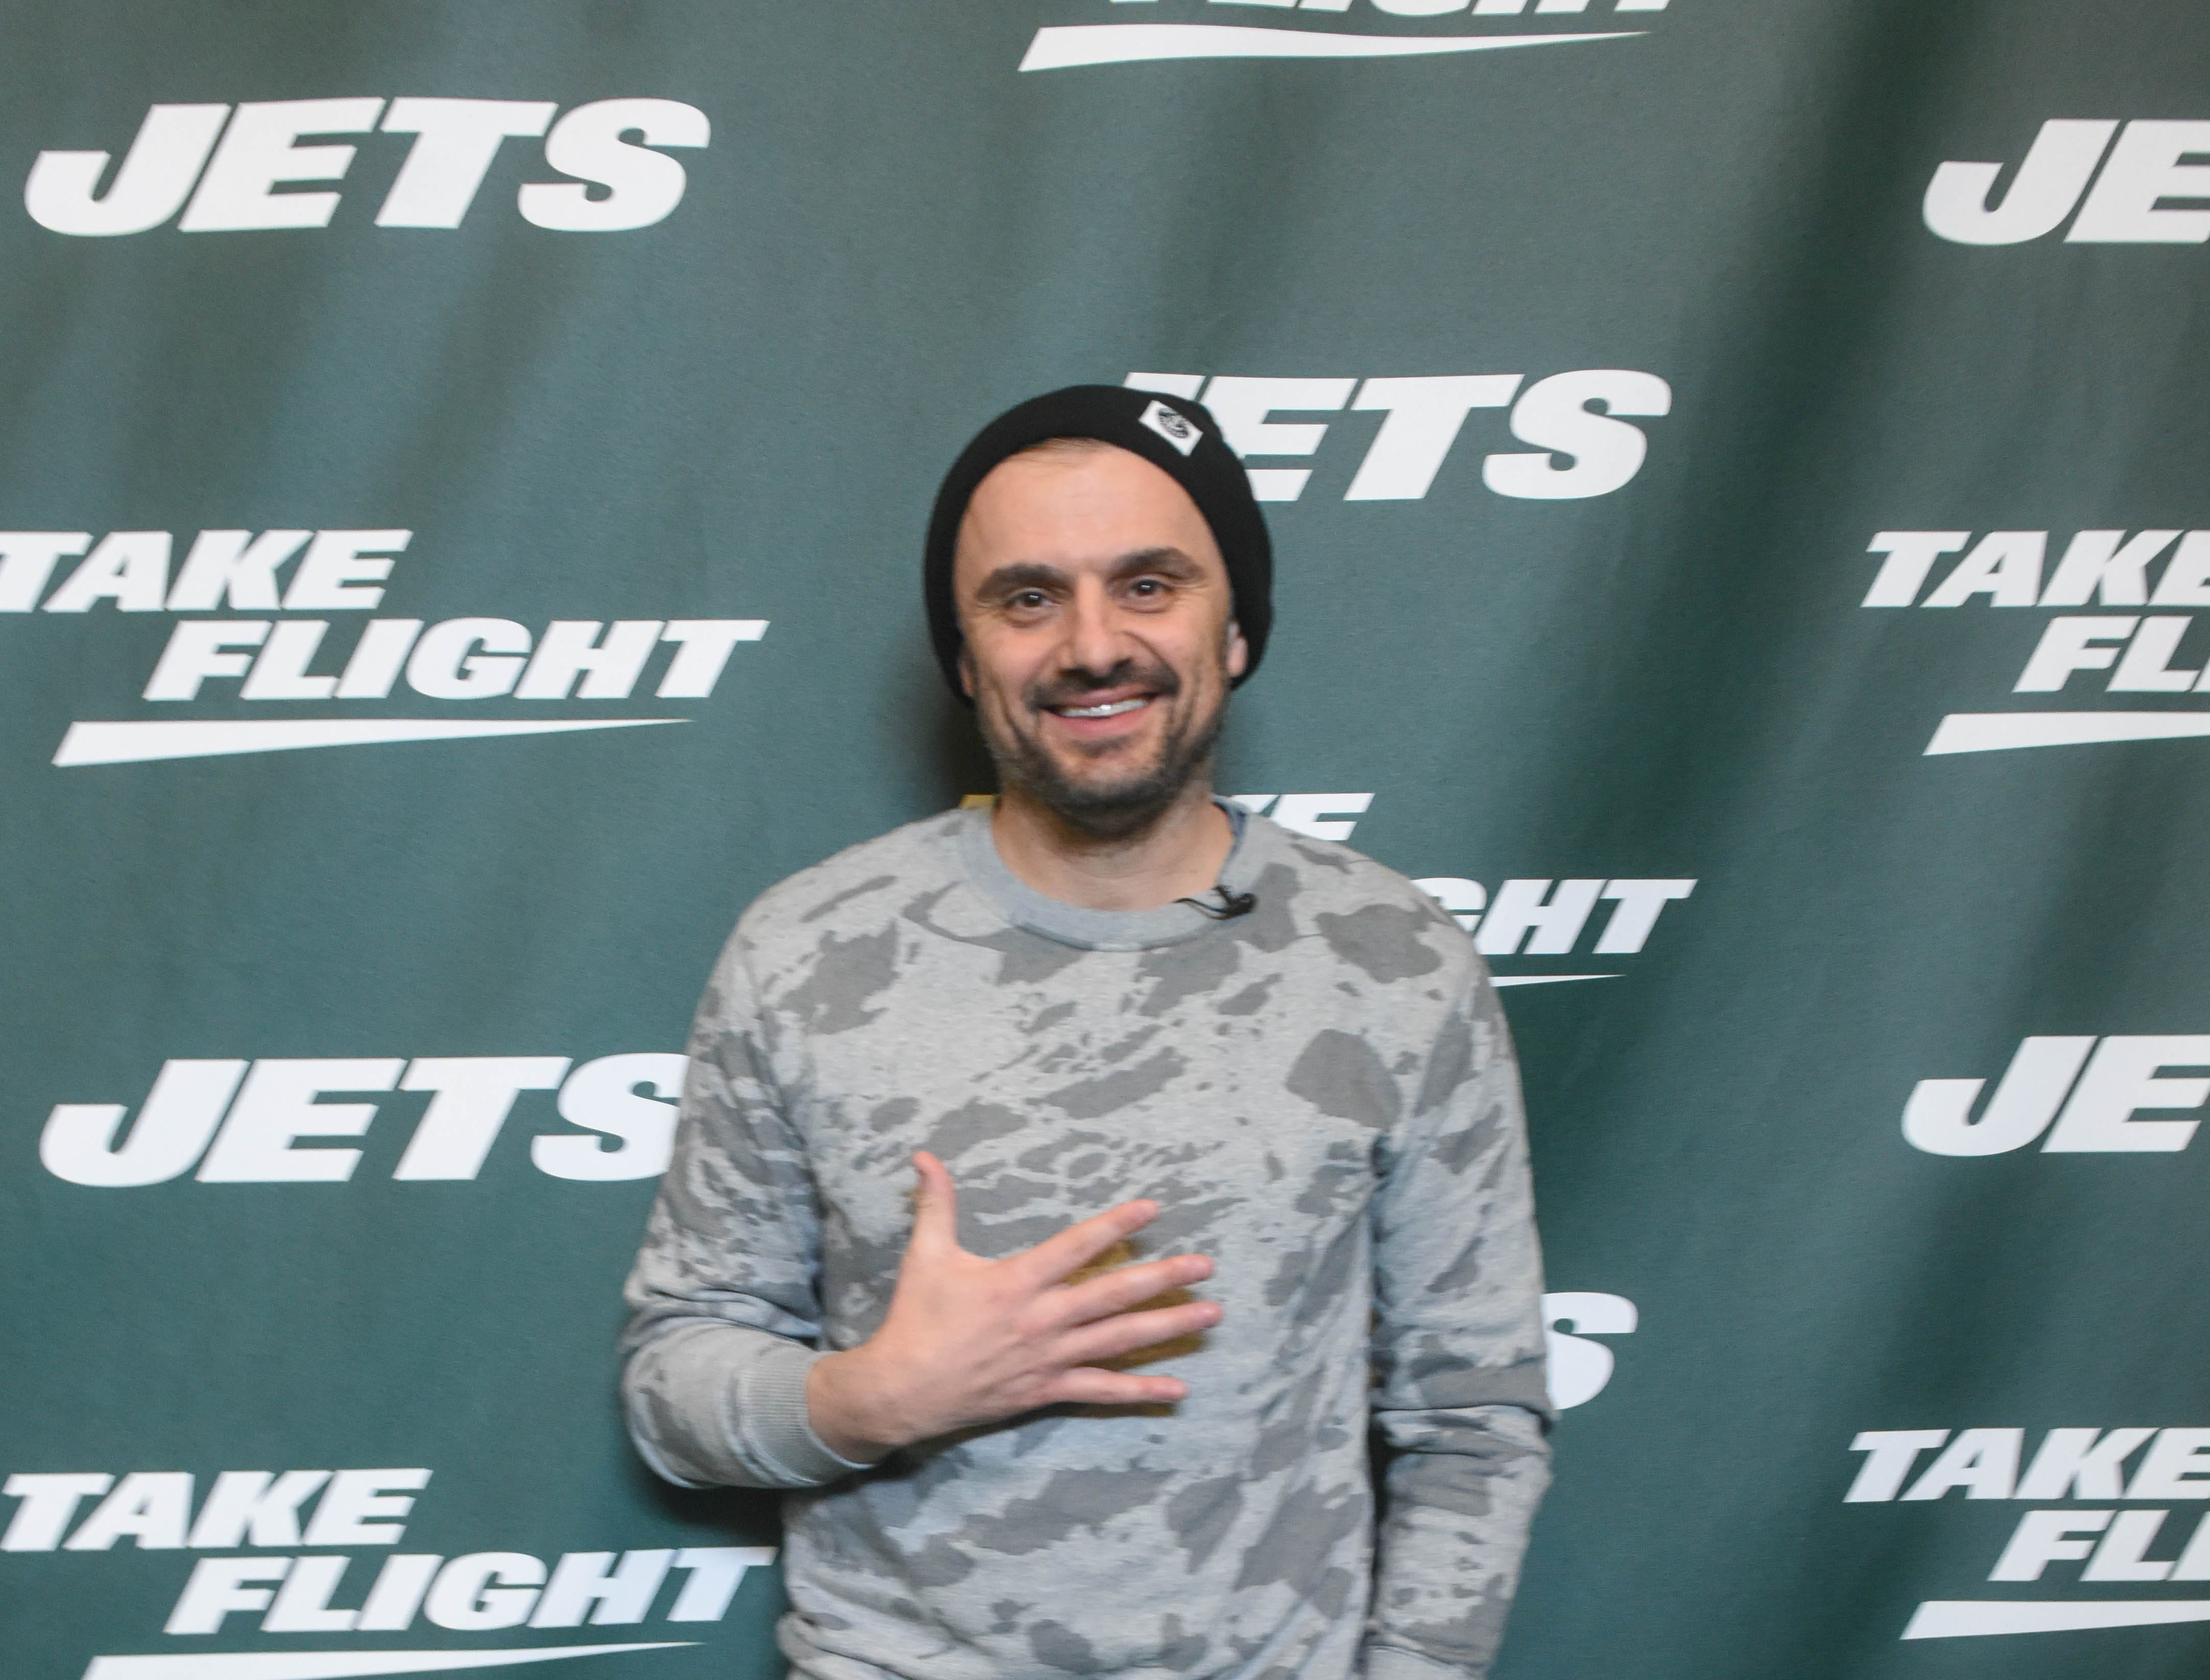 Gary Vaynerchuk. The NY Jets unveiled their new football uniforms with an event hosted by JB Smoove at Gotham Hall in New York. 04/05/2019